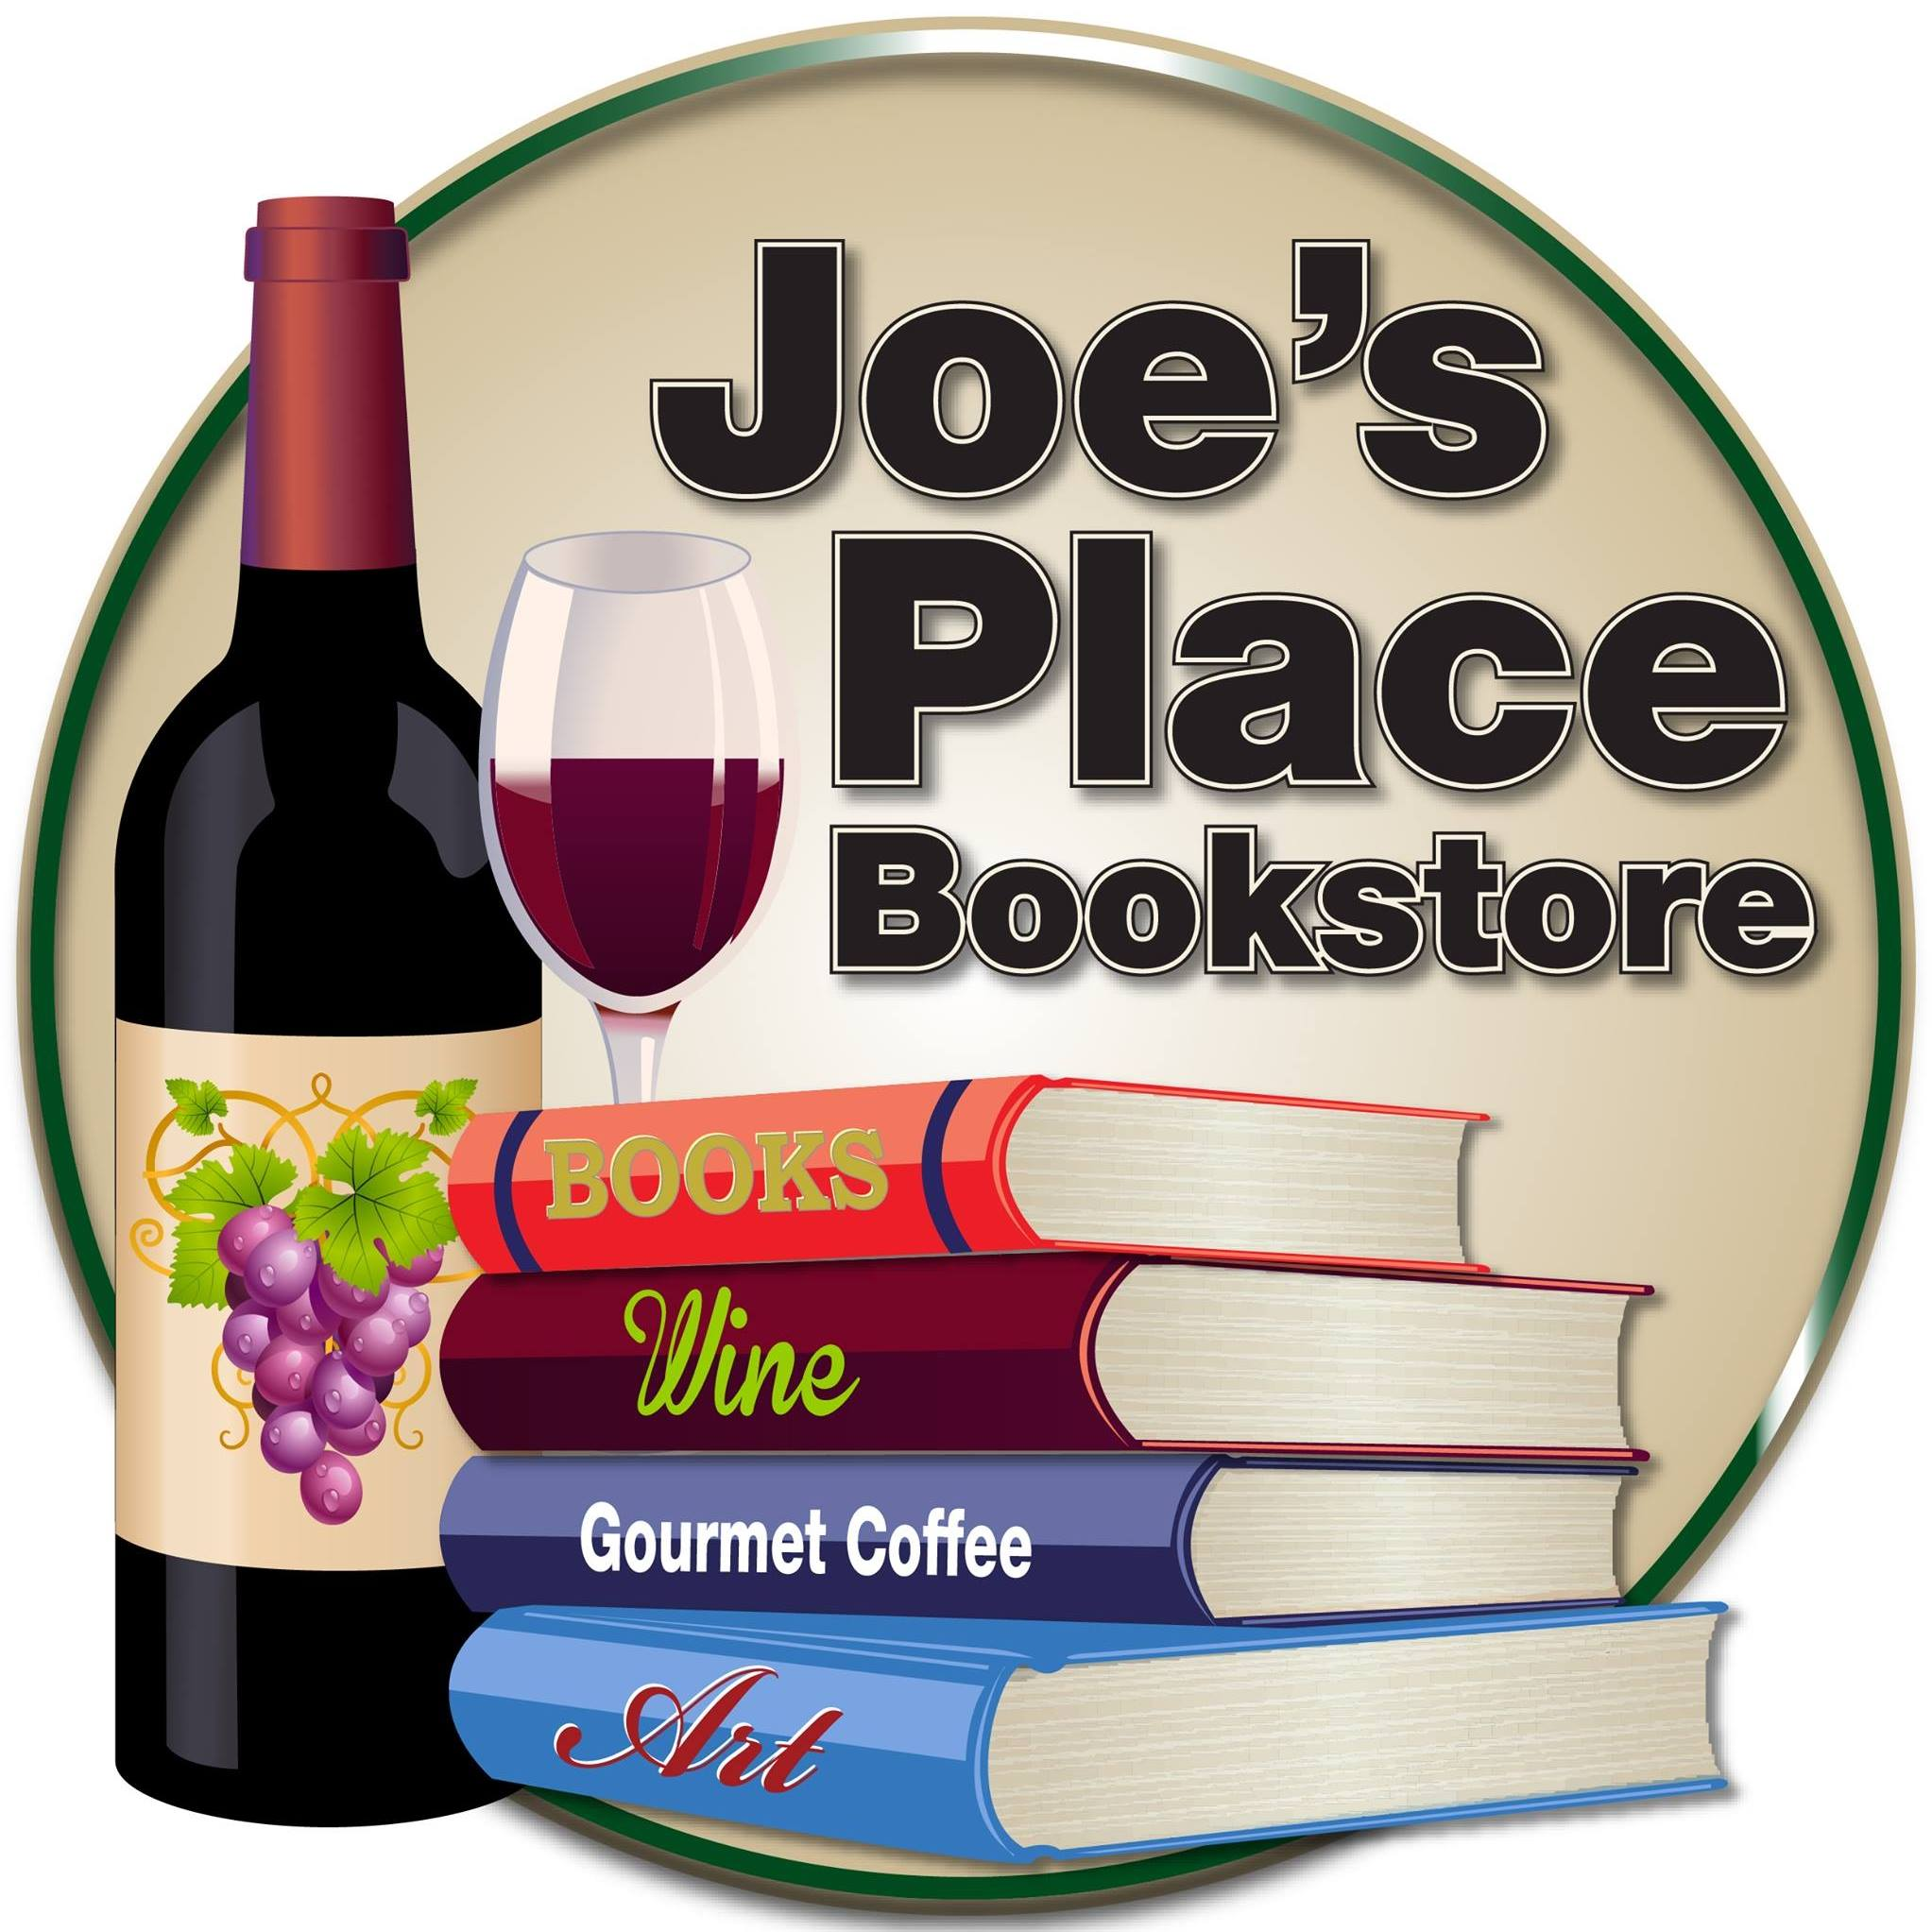 Joe's Place Bookstore